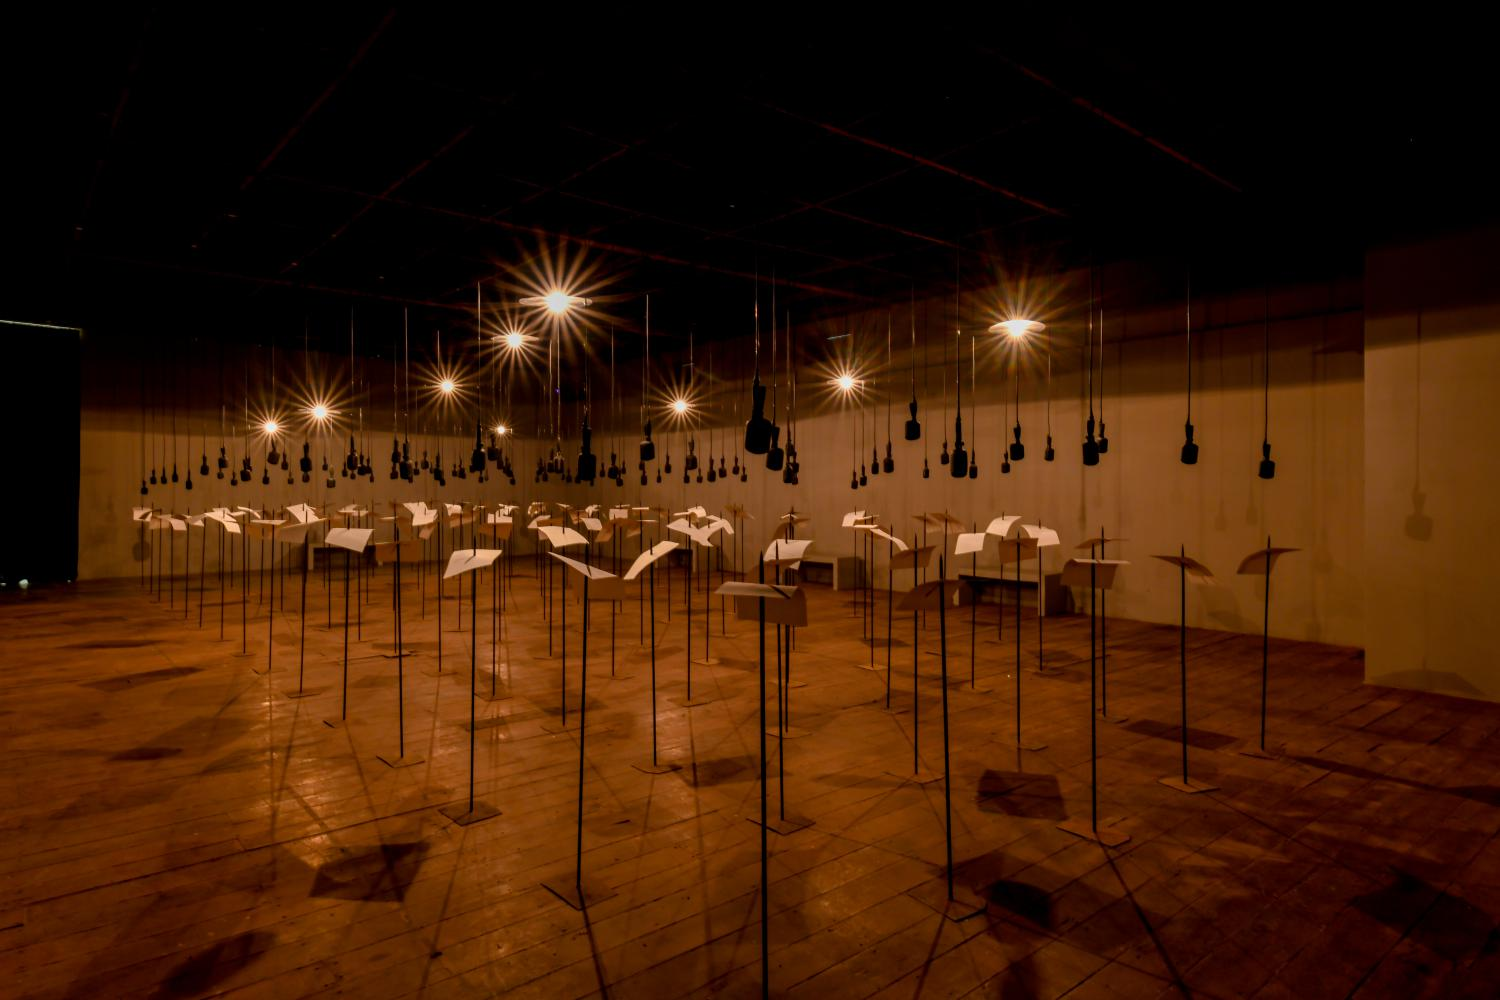 Abbildung: Shilpa Gupta/Courtesy Kochi Biennale Foundation